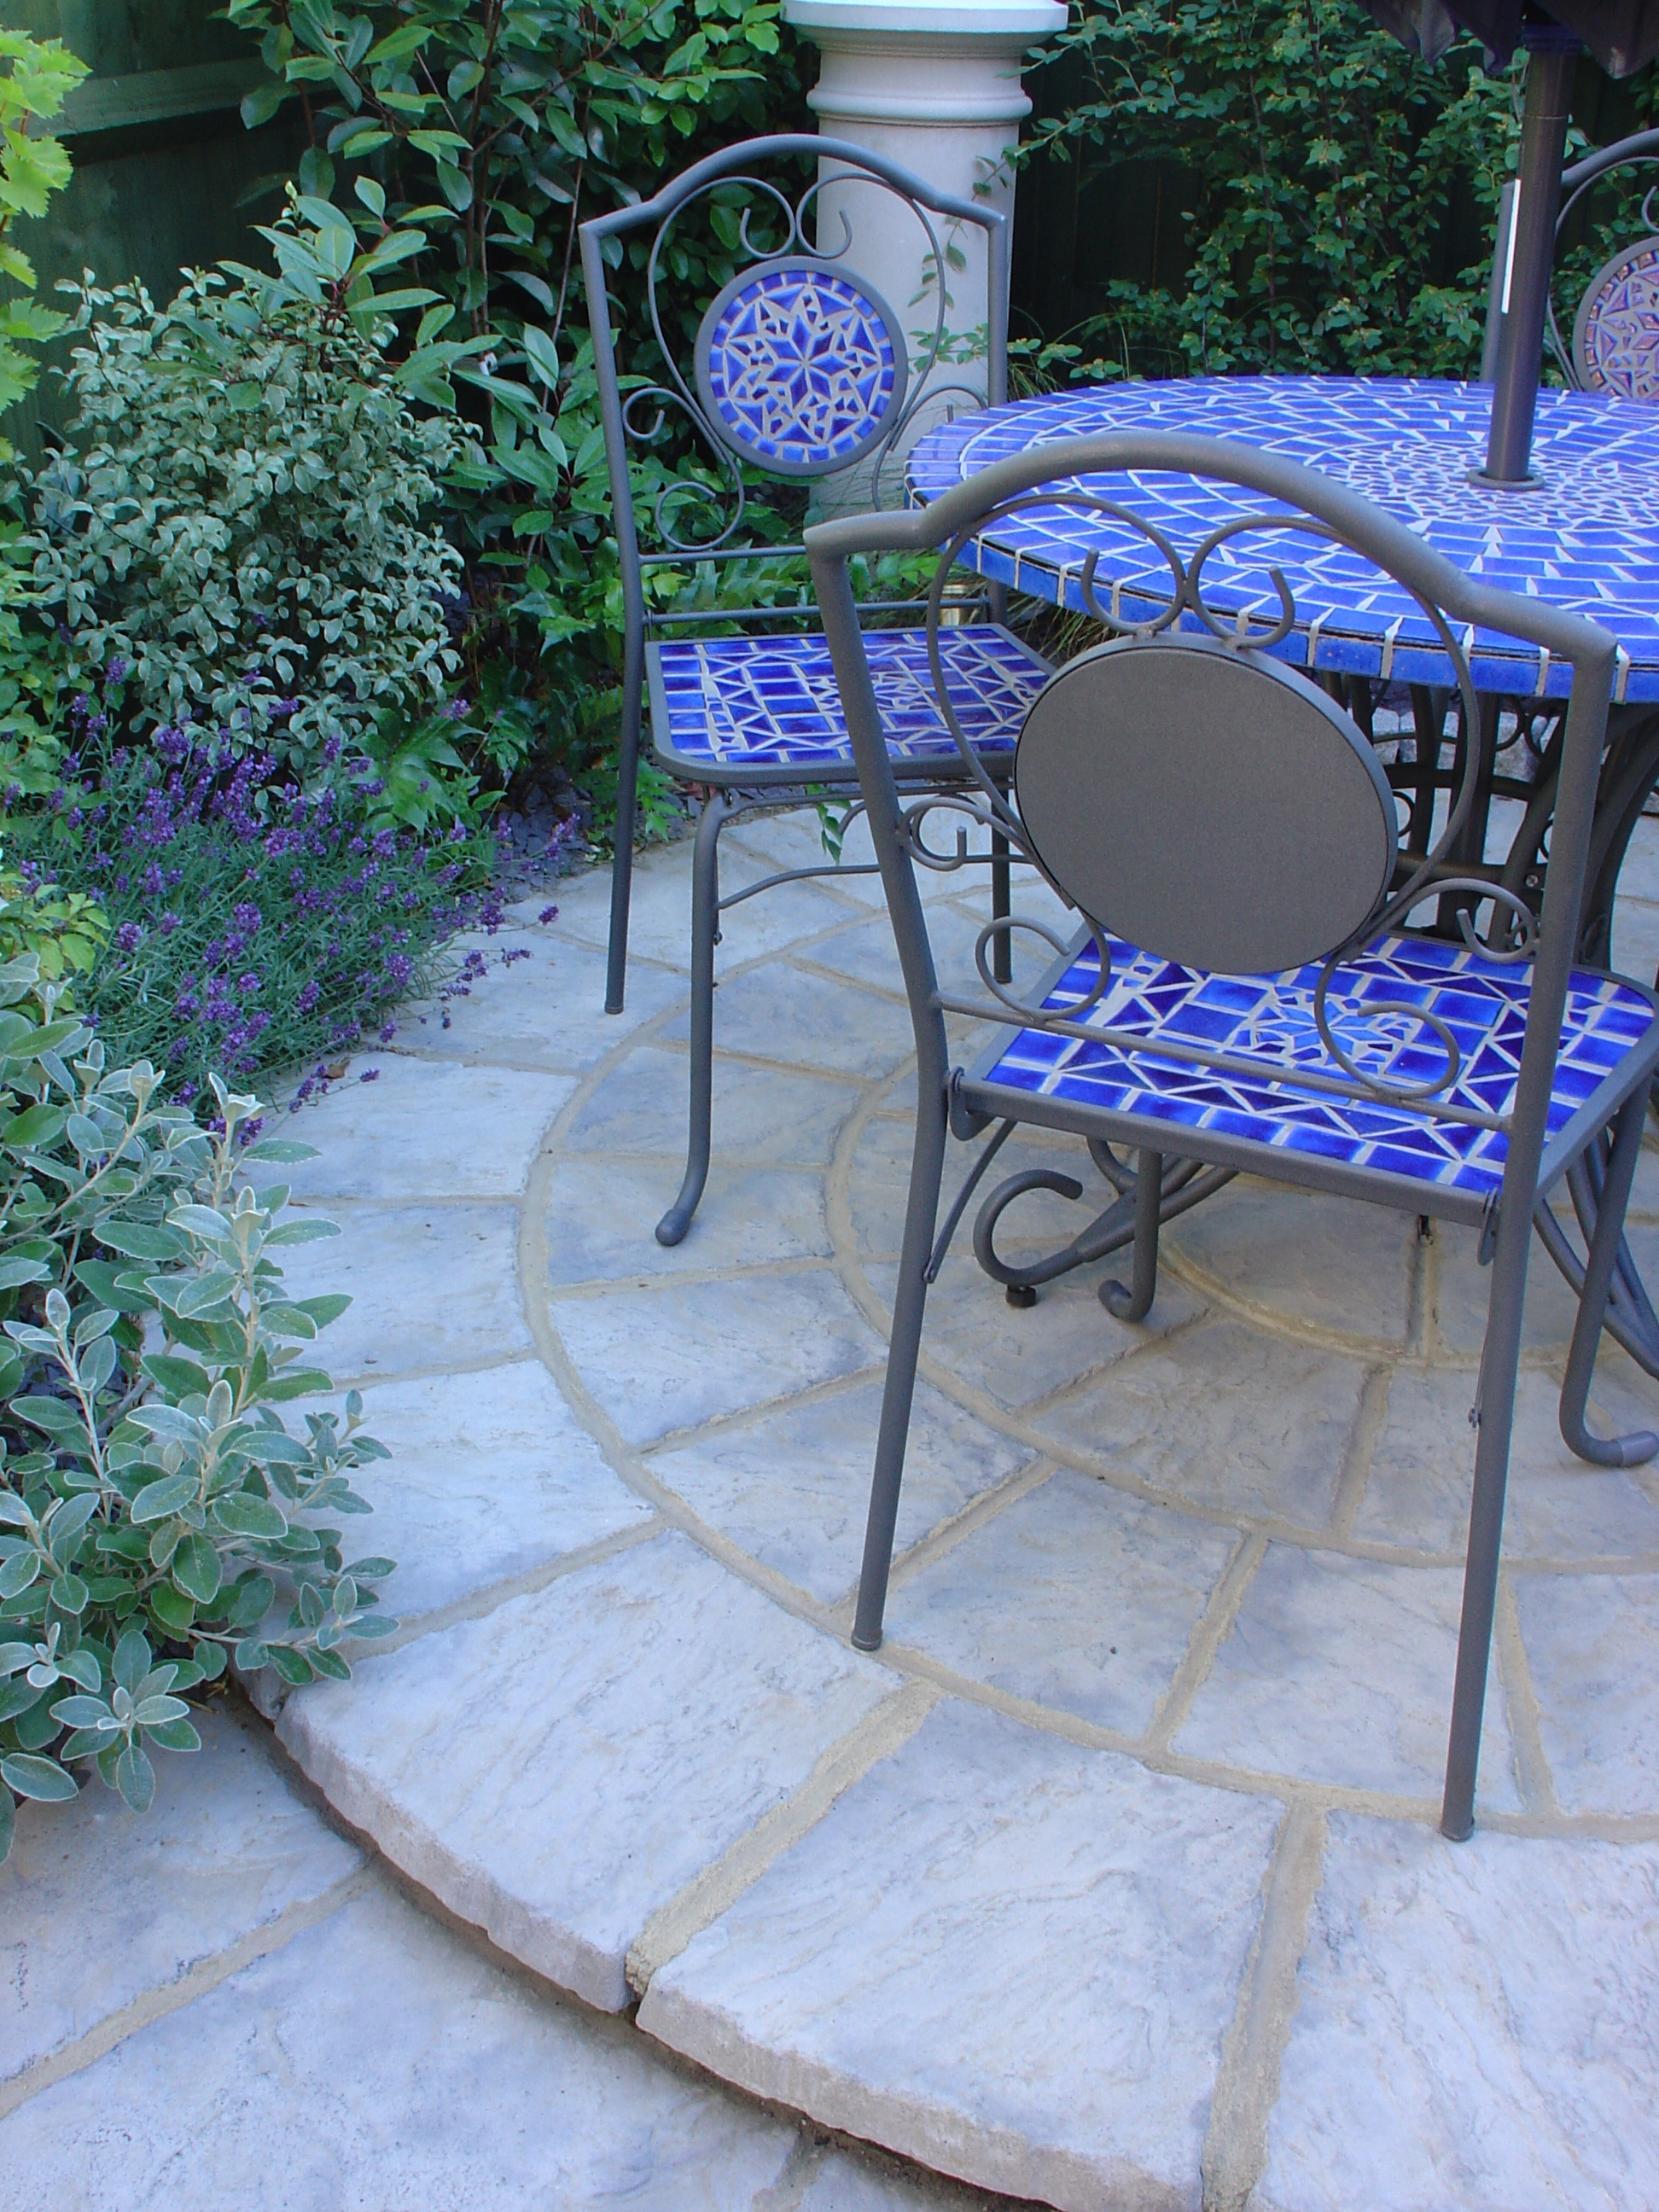 Blue tiled outdoor furniture